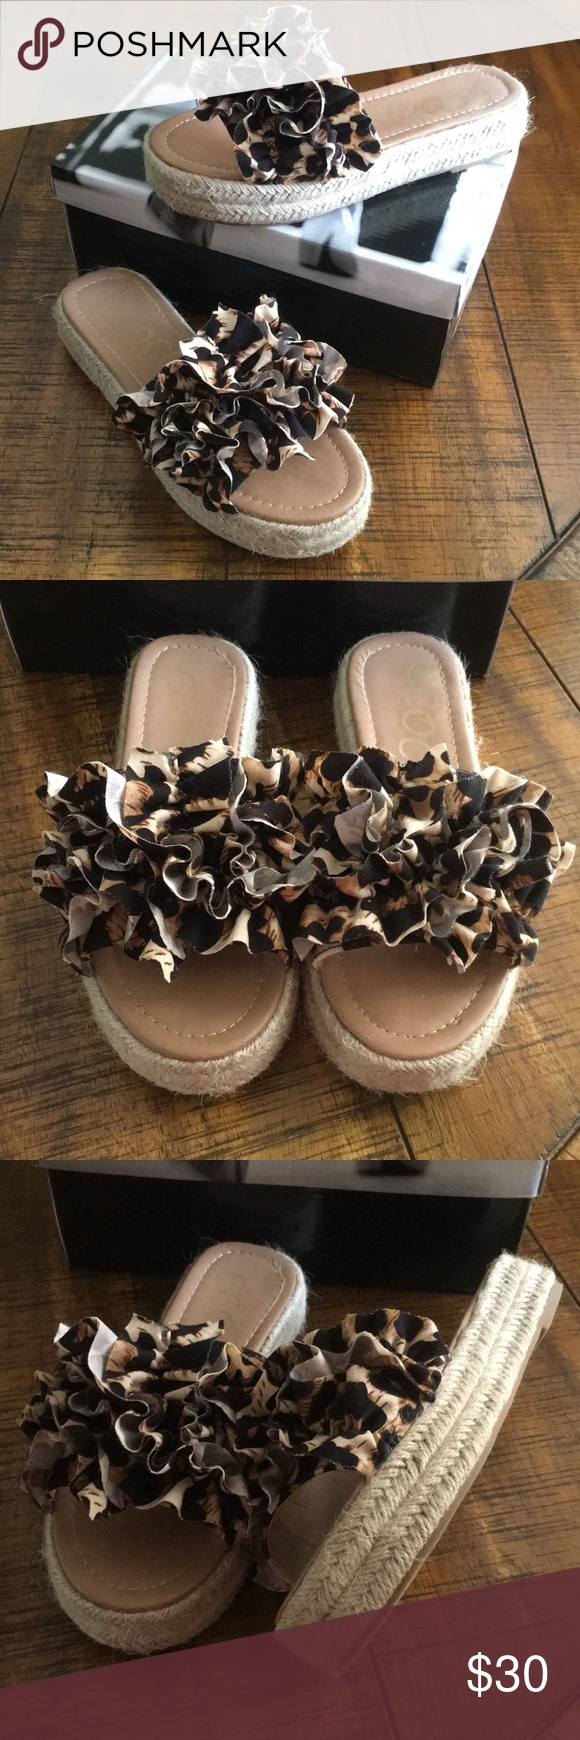 Walk on the Wild Side Sandals by Ccocci